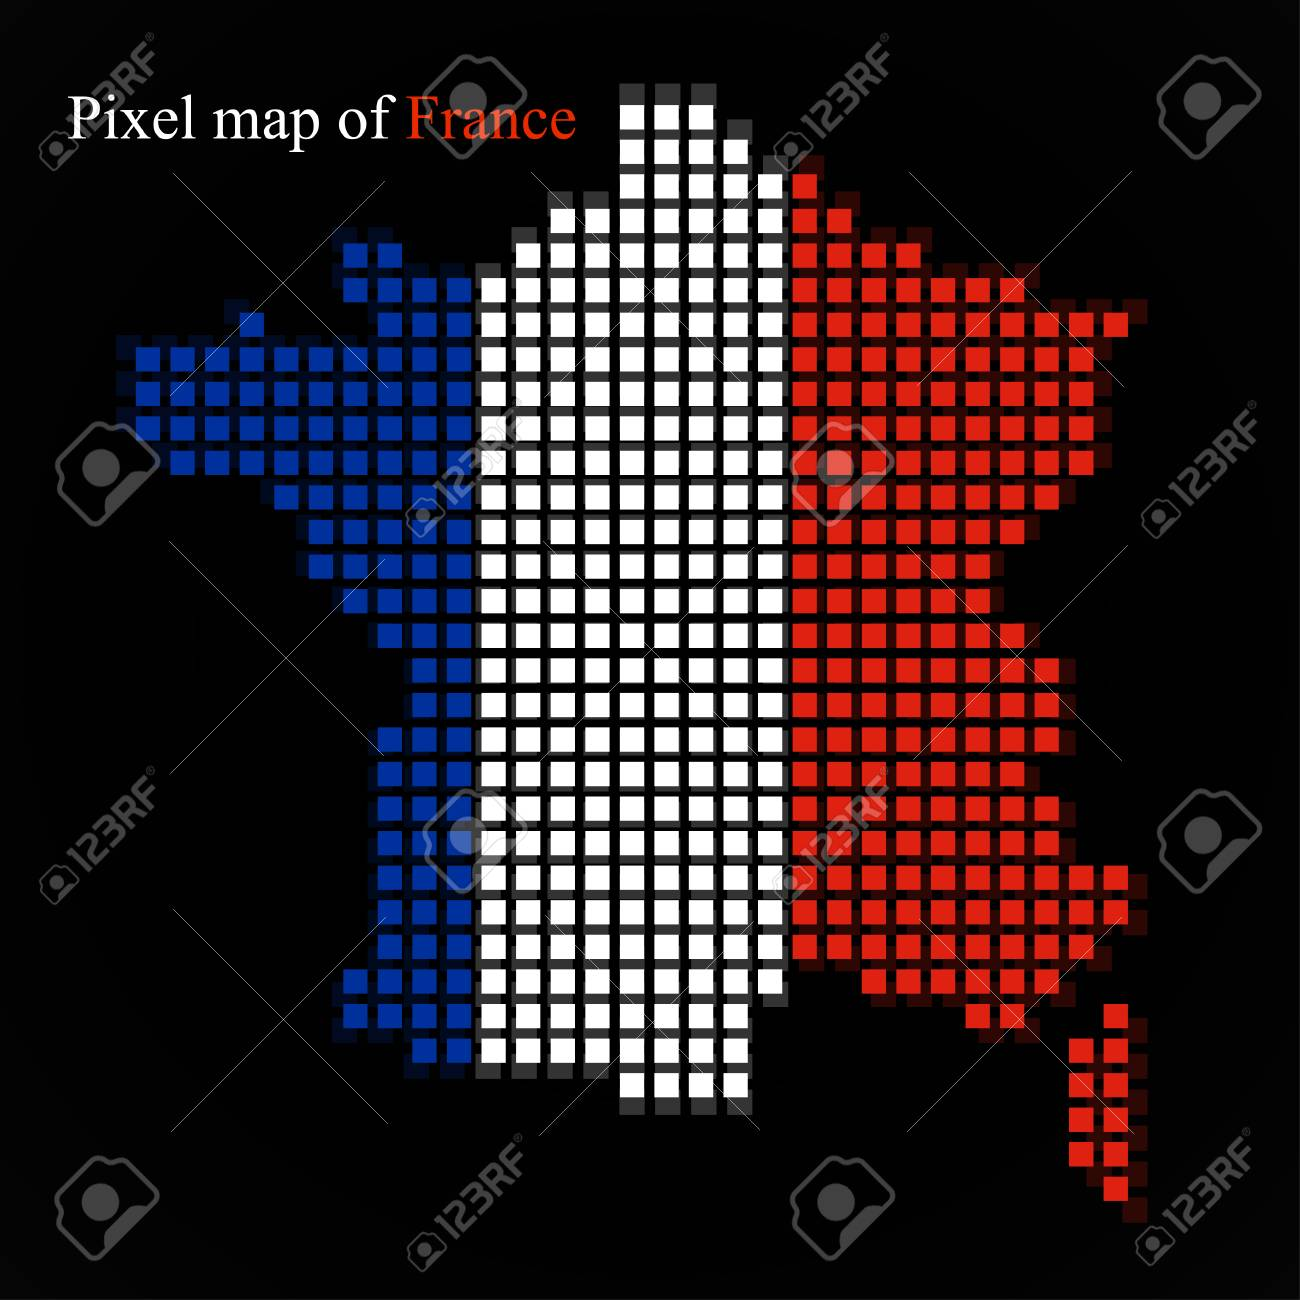 Pixel Map Of France With The Flag Inside Royalty Free Cliparts Vectors And Stock Illustration Image 76168211